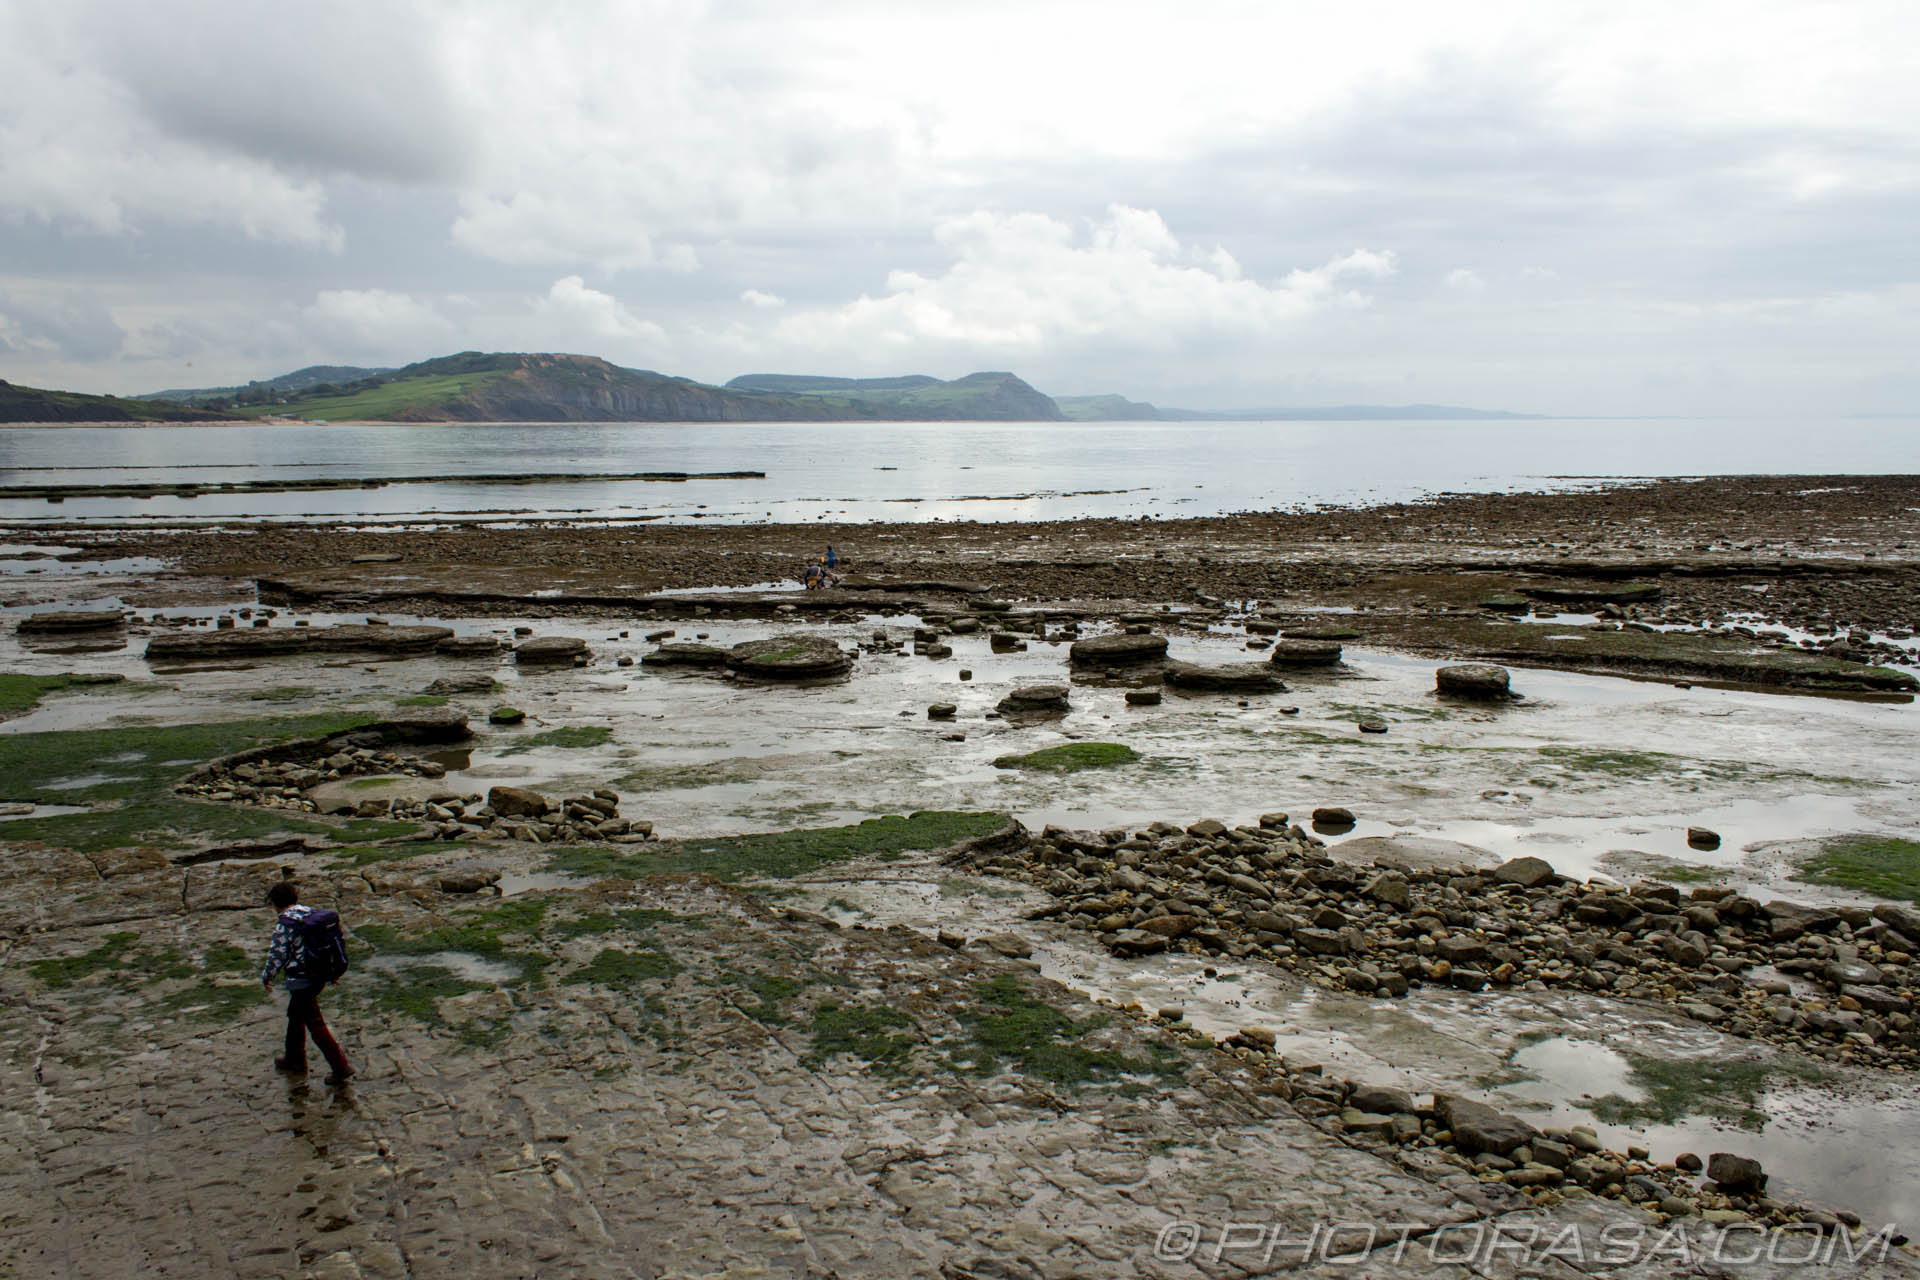 http://photorasa.com/jurassic-coast-lyme-regis/broken-rocks-and-jurassic-cliffs/